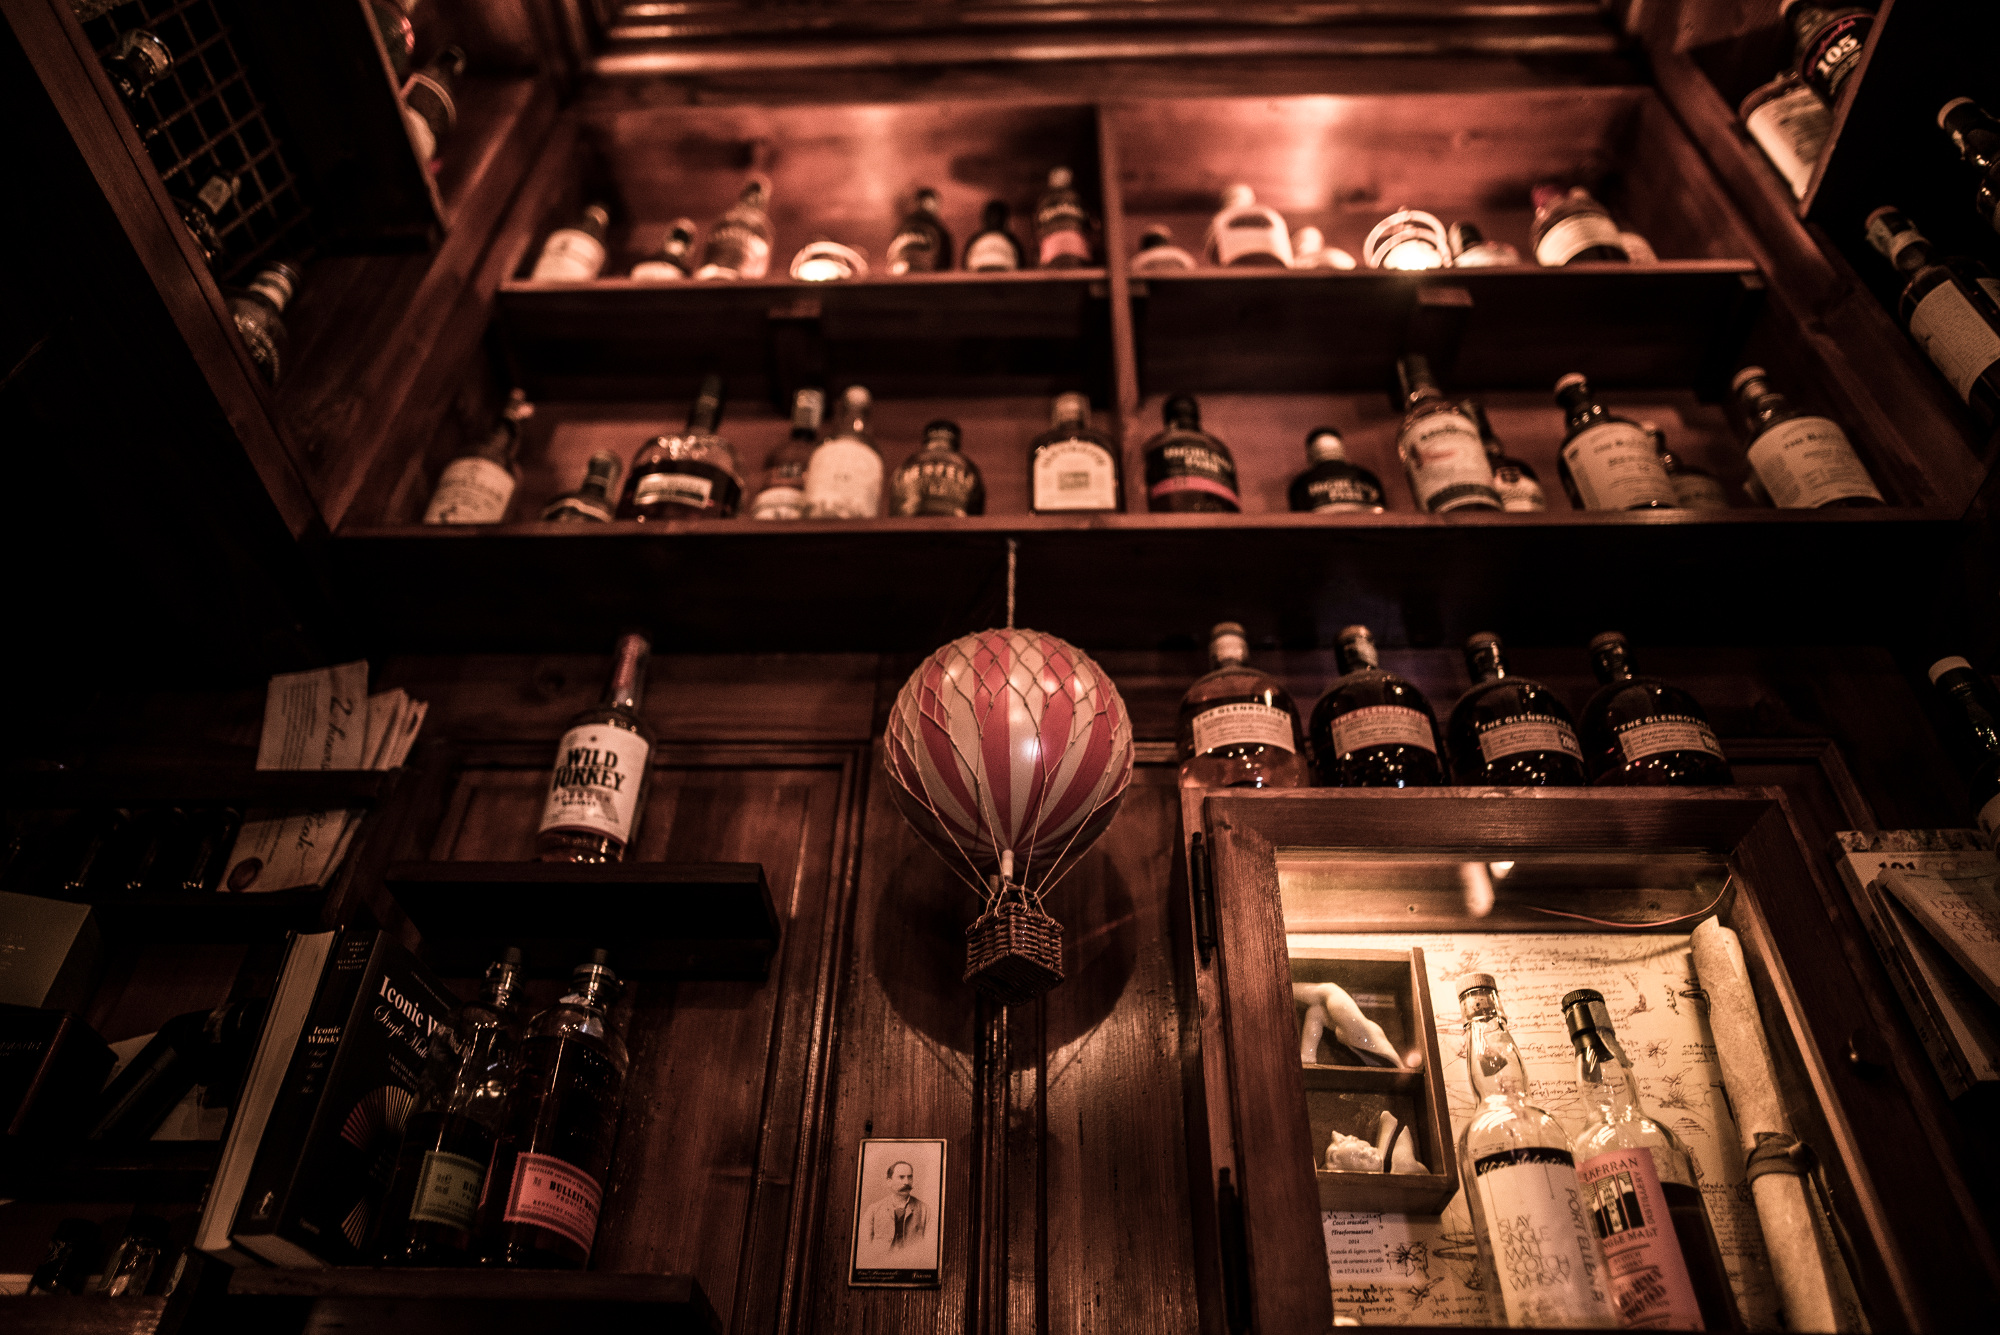 Is Backdoor 43 the world's smallest bar?